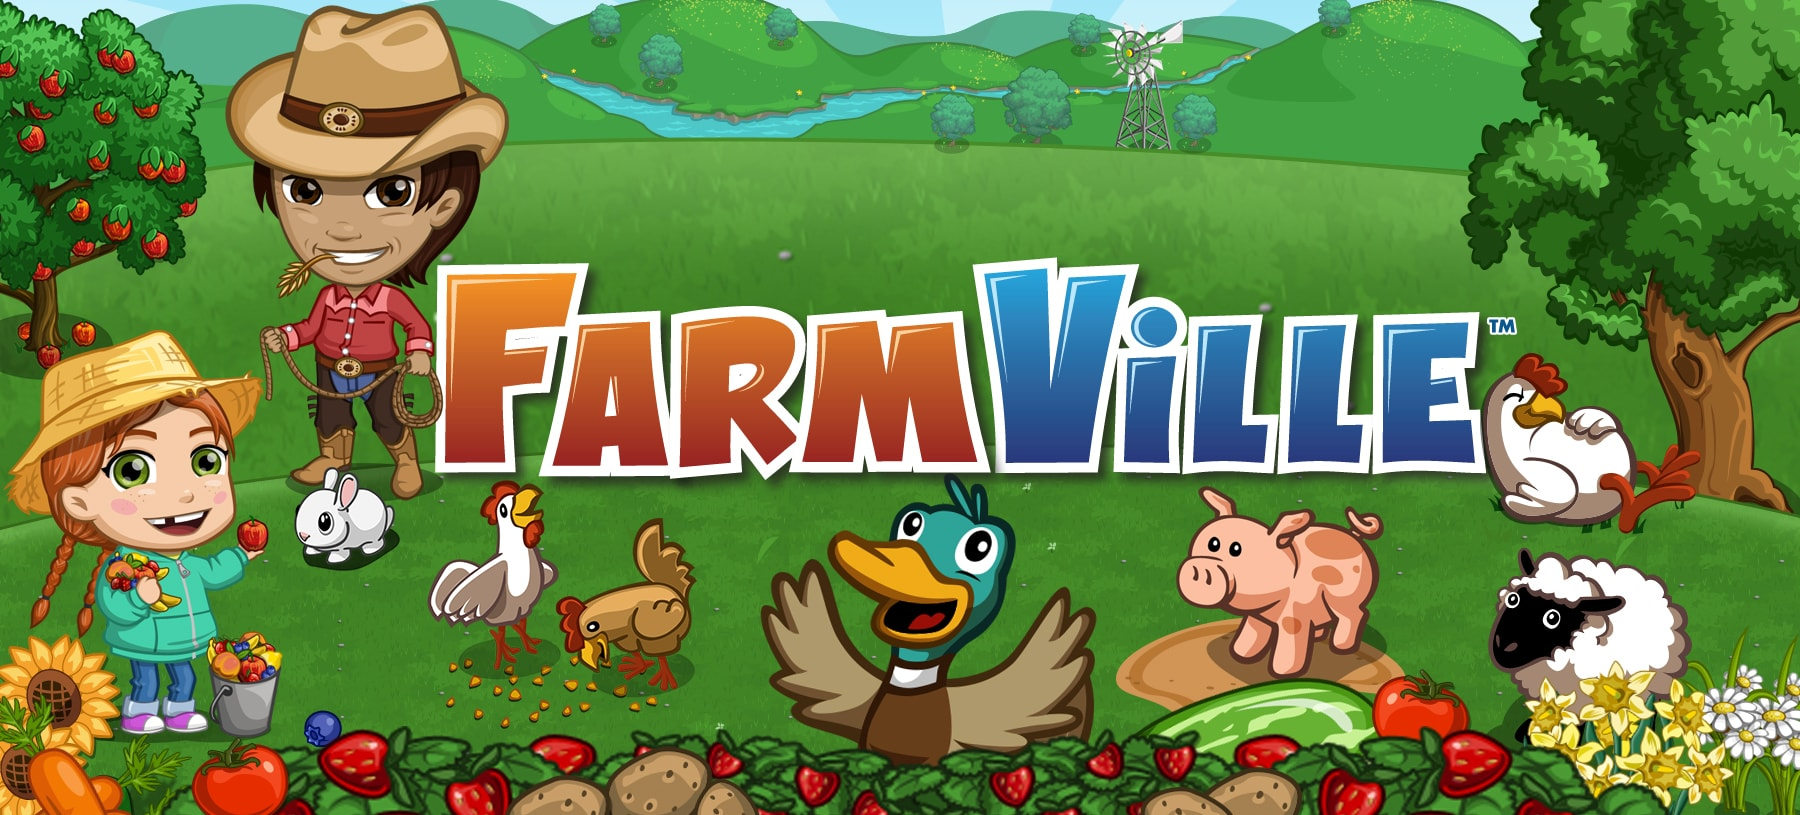 Farmville discontinuing operations after 11 years